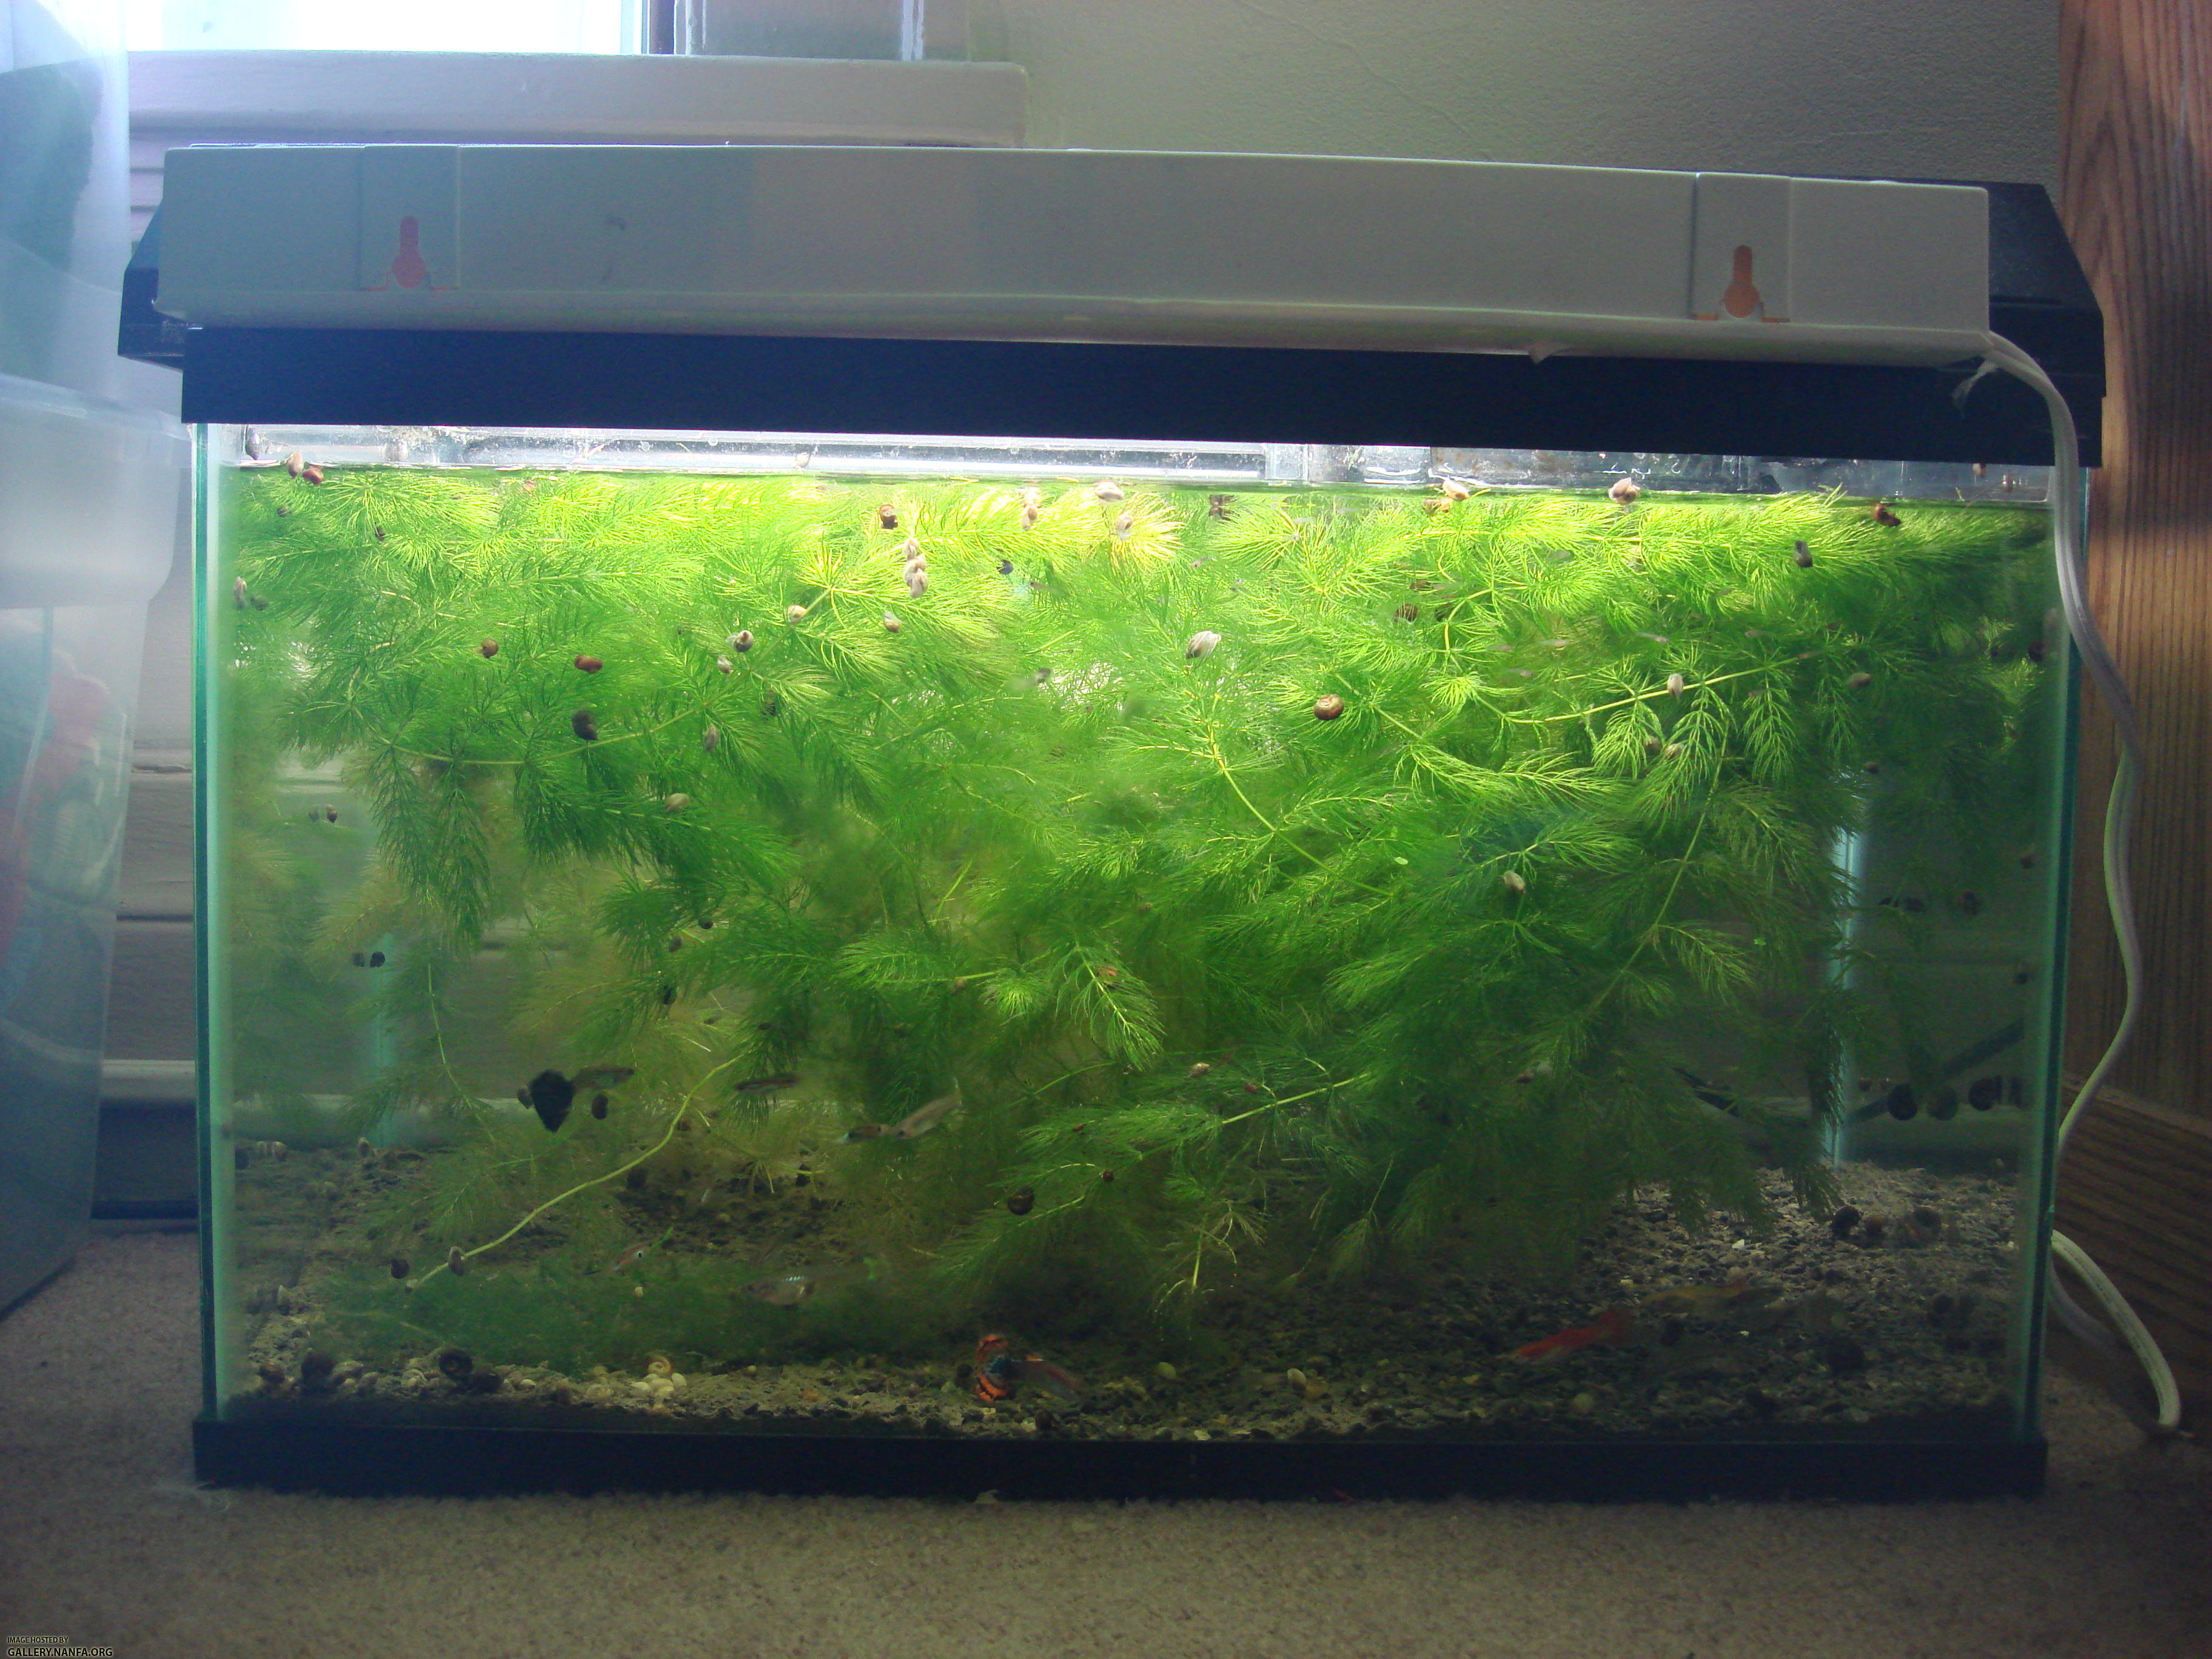 10 gallon guppy tank setup, stuffed with Ceratophyllum demersum and with an excellent fry survival rate.